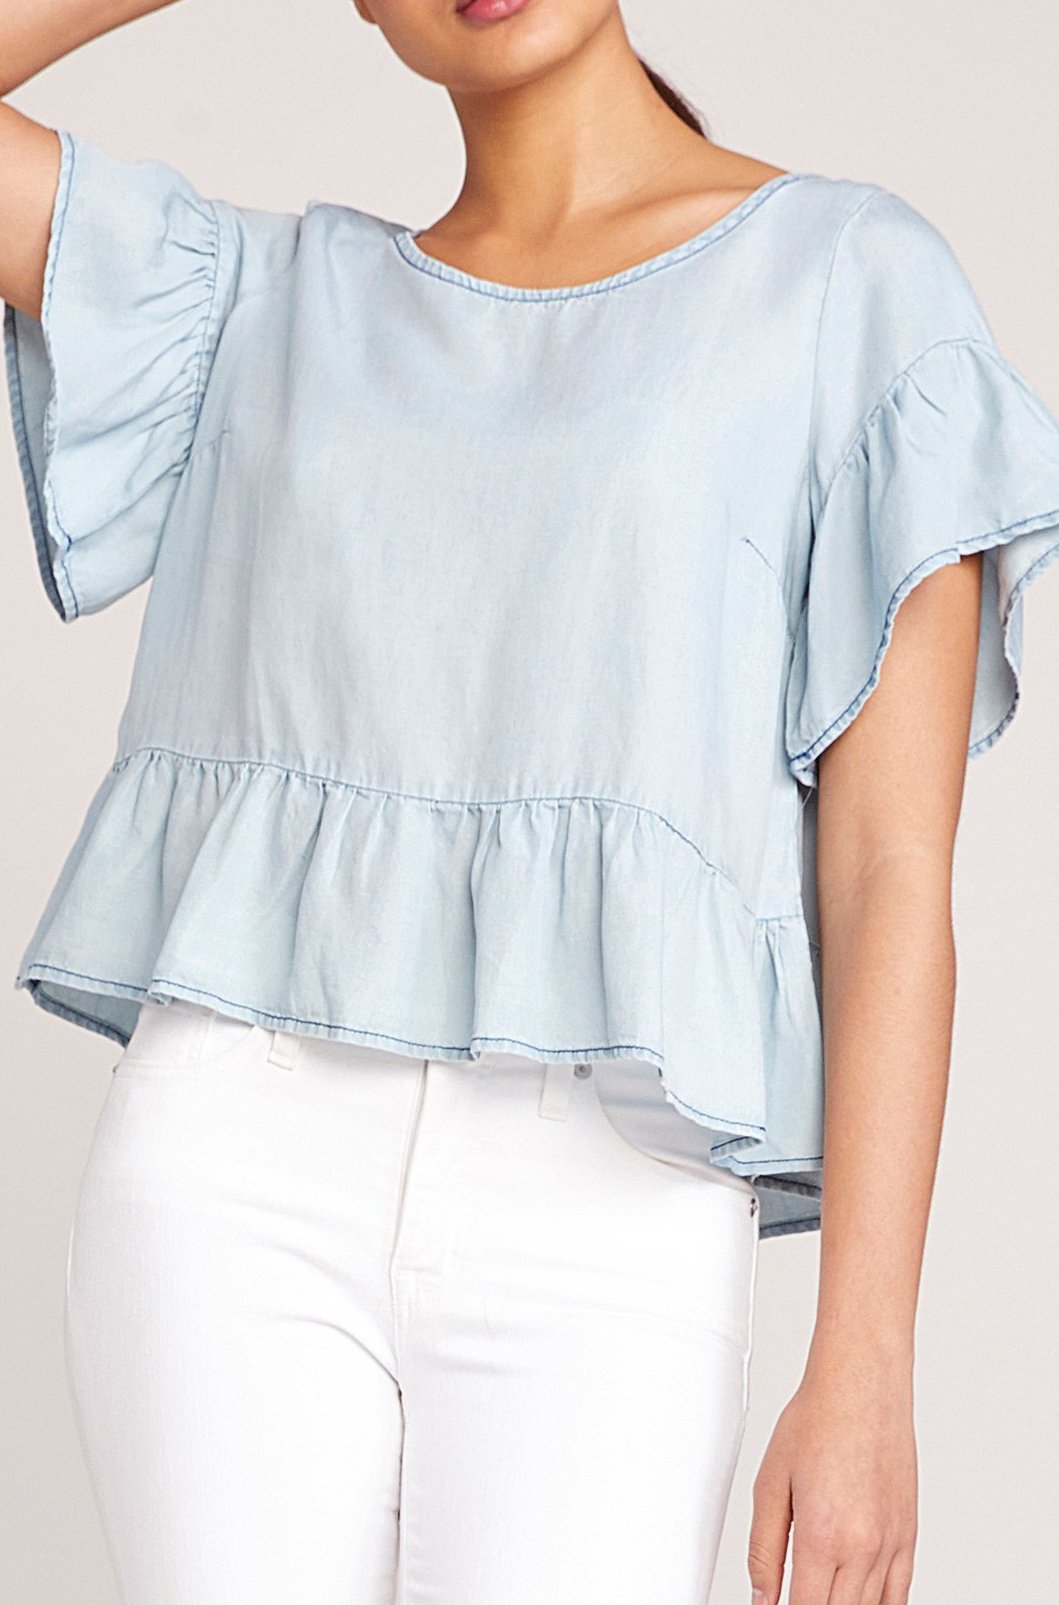 BB Dakota Ruffle & Ready Top in Indigo BJ104240